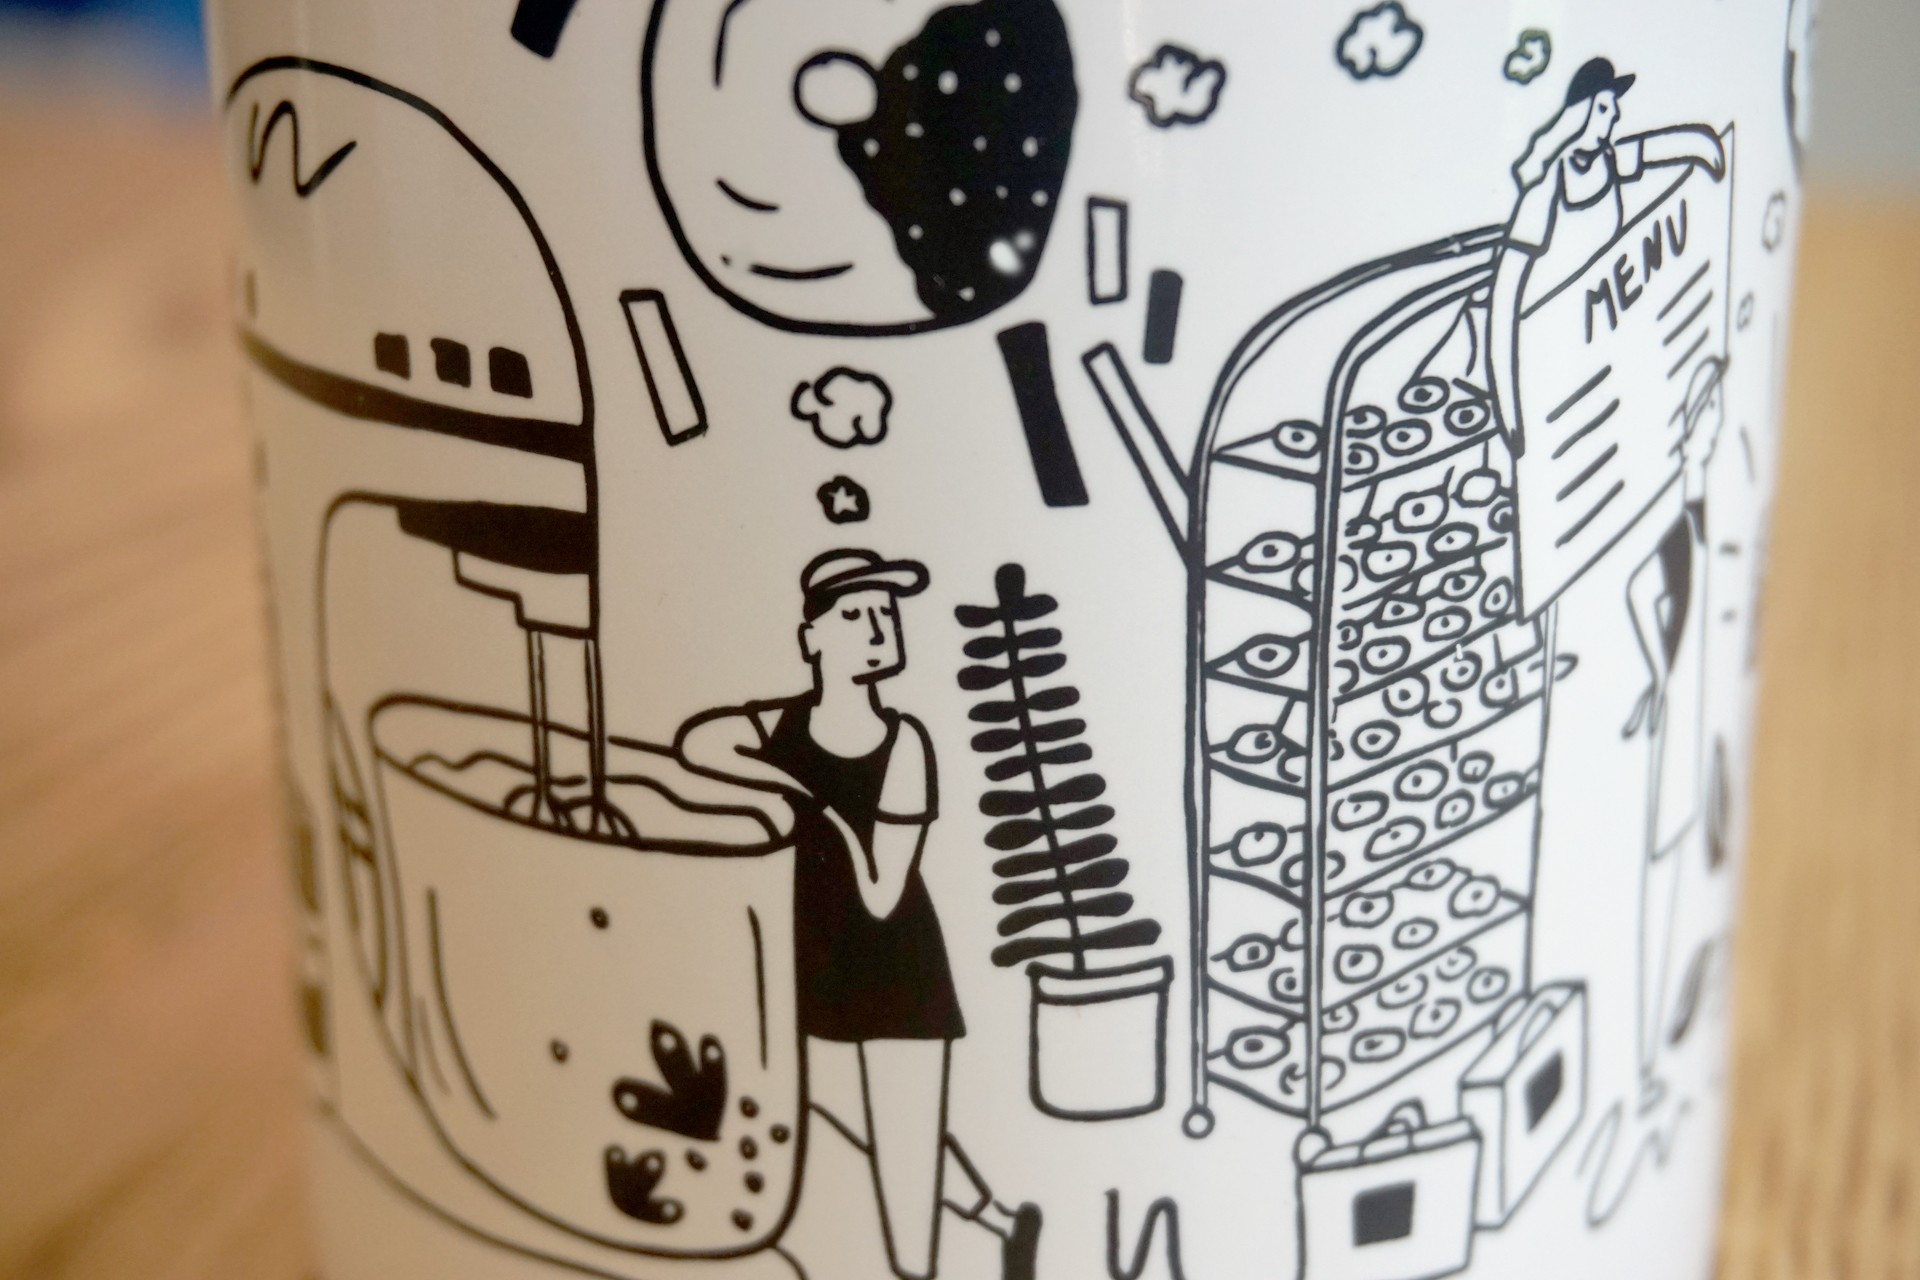 Detail of mug that shows baker leaning against oversized mixer dreaming of donuts.